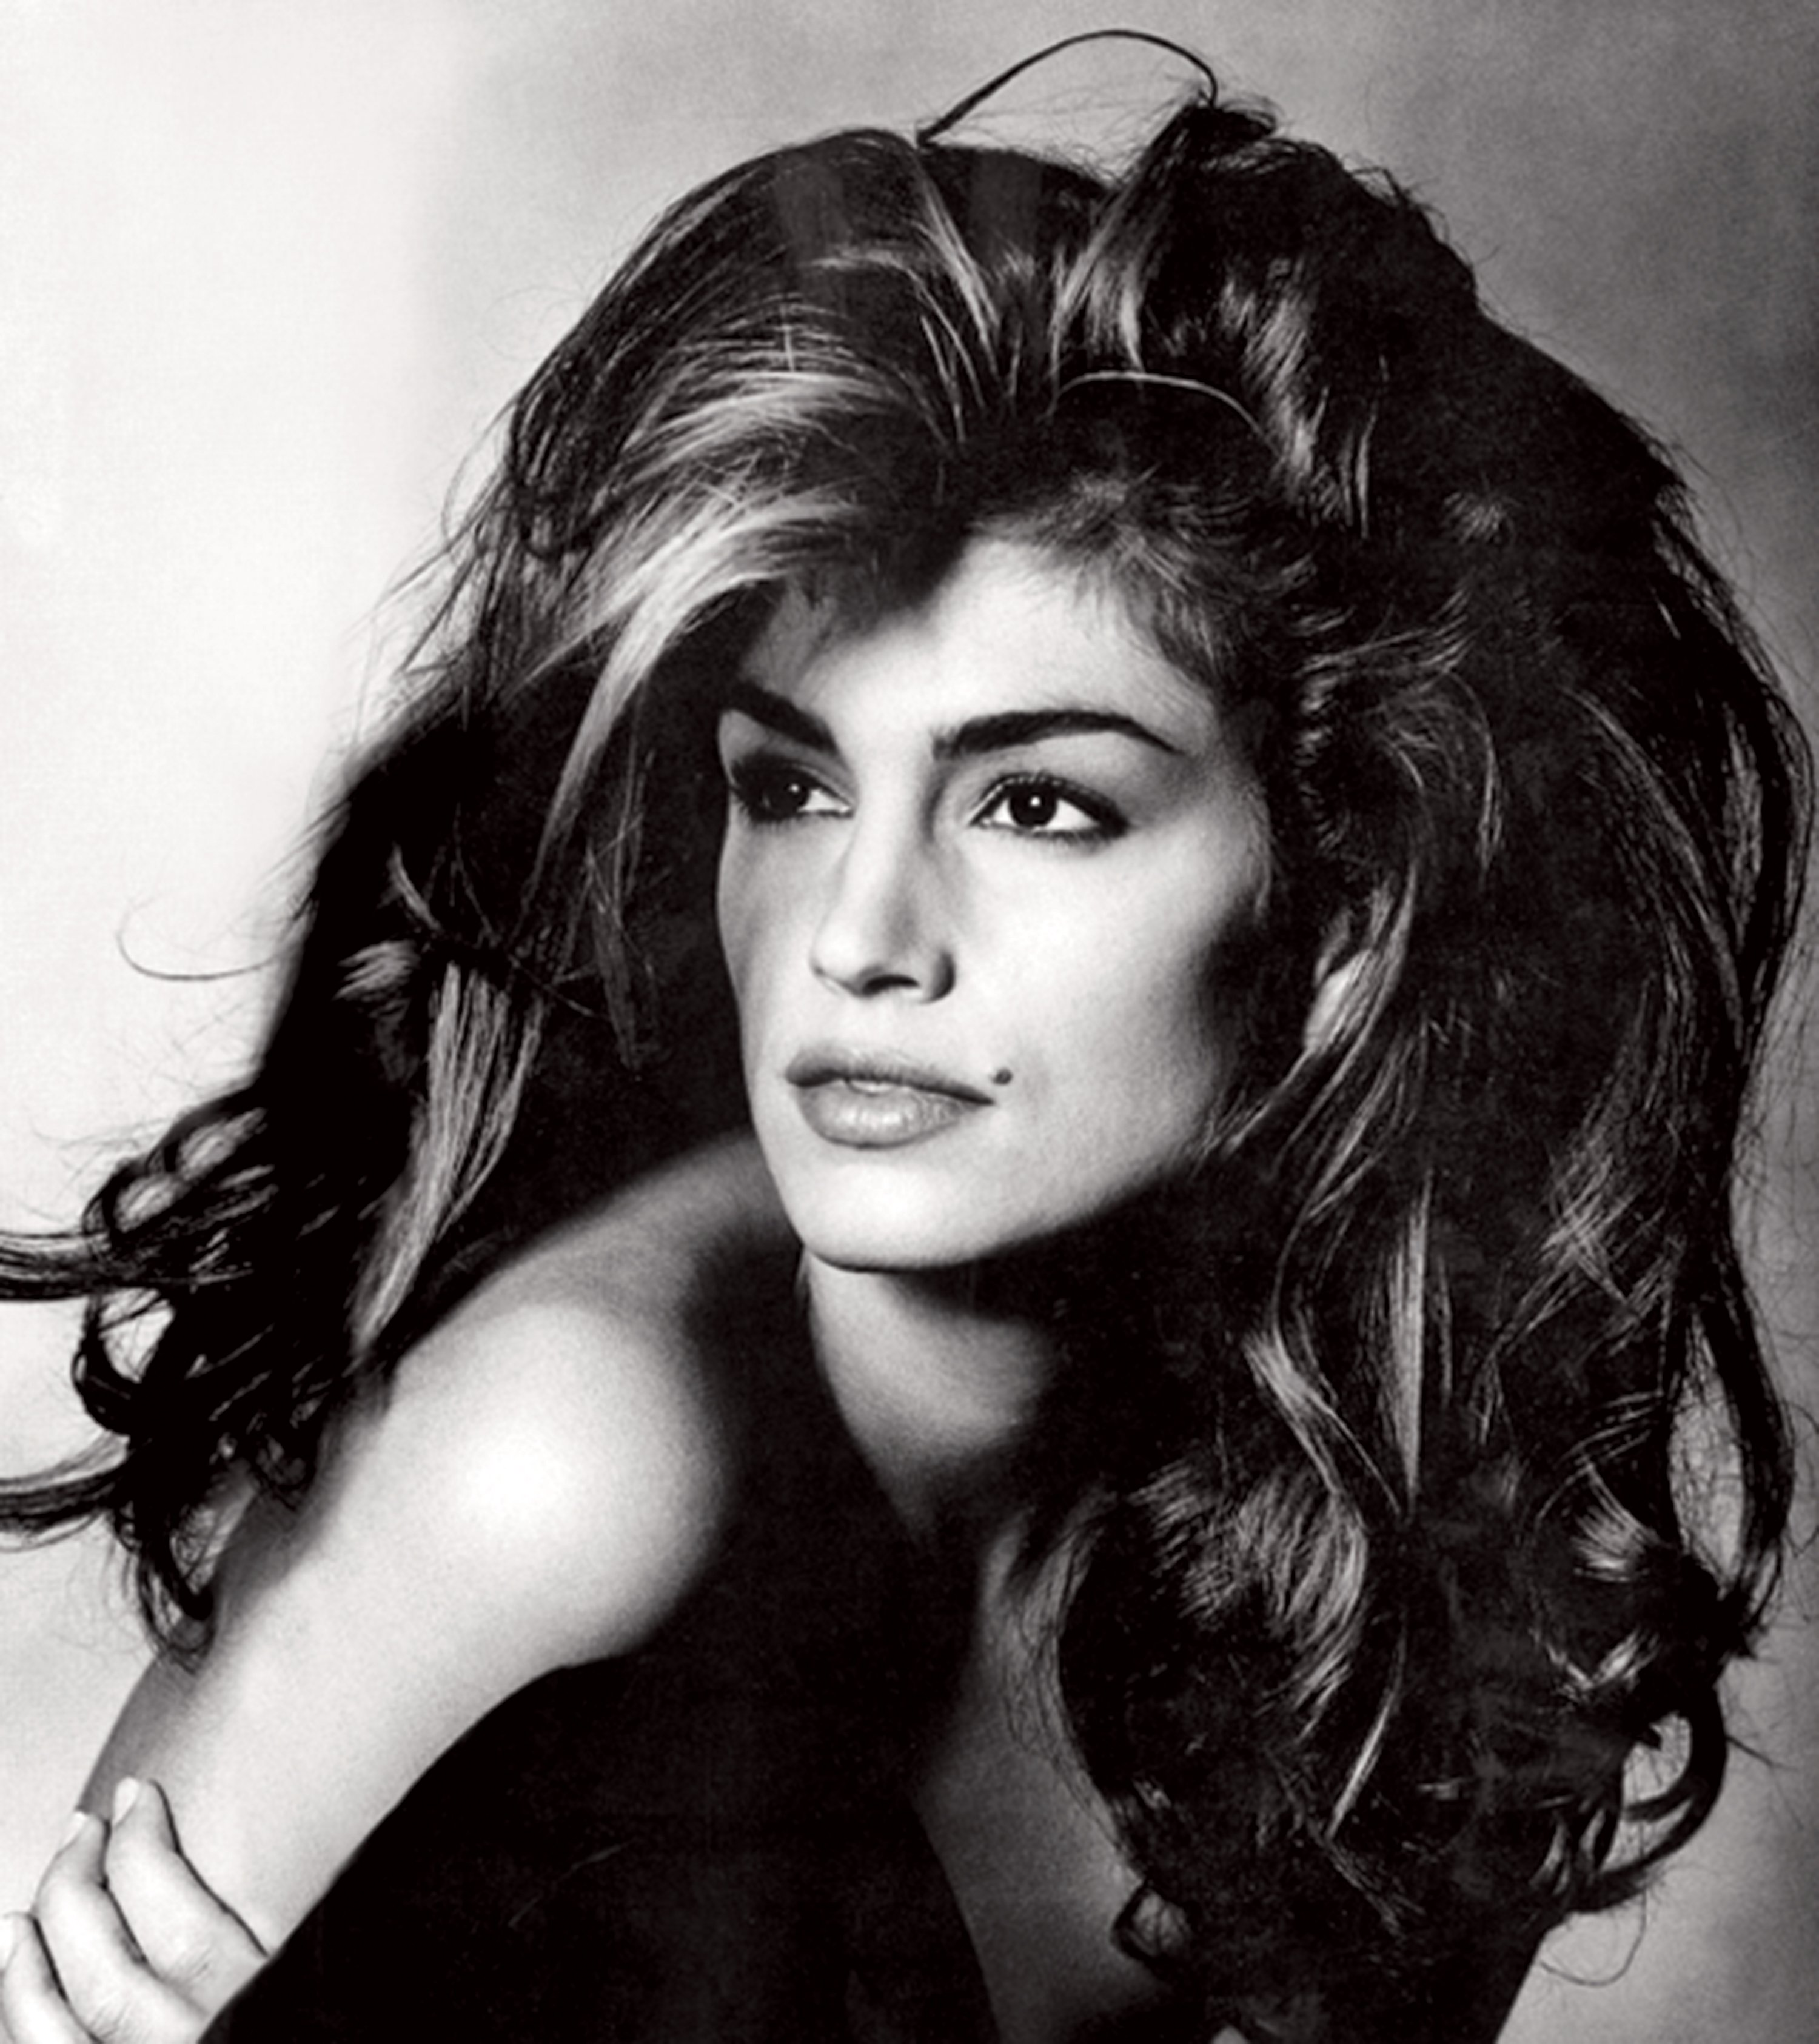 High Resolution Wallpaper | Cindy Crawford 3000x3372 px